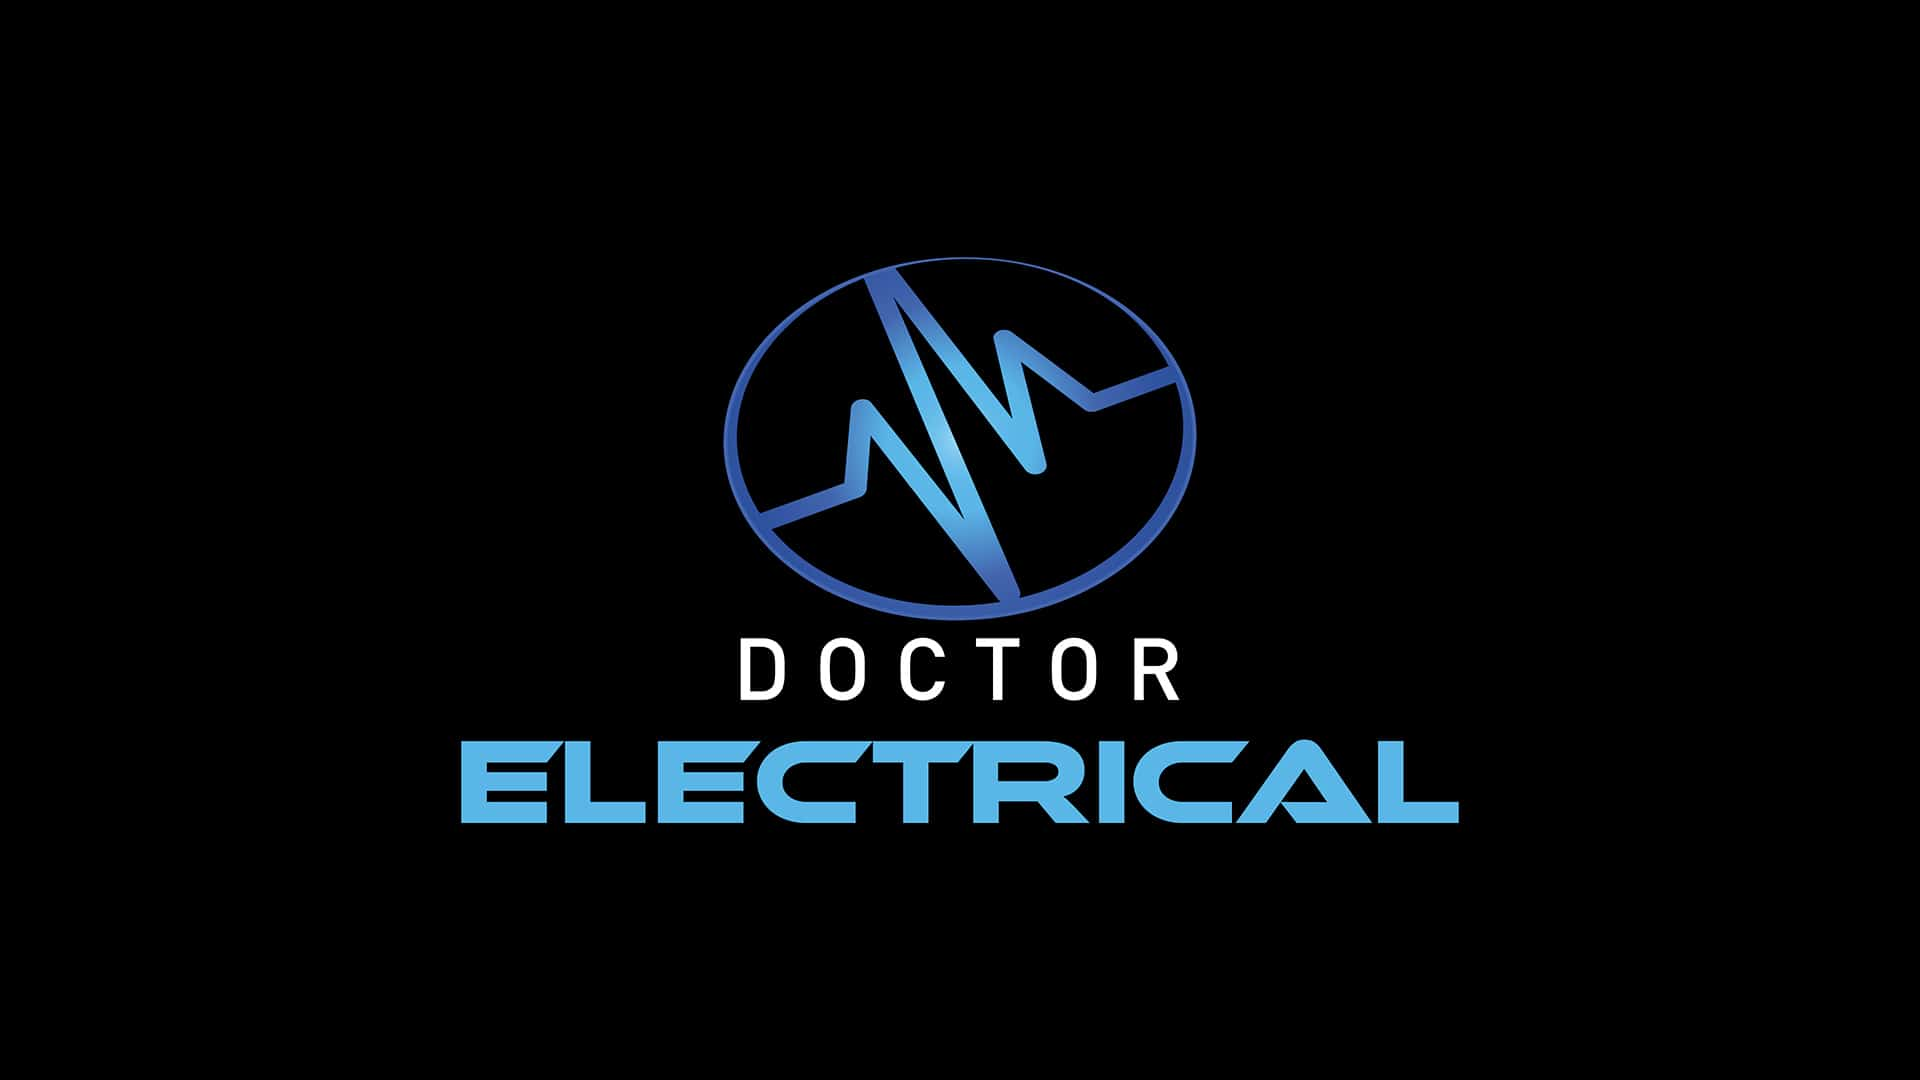 Doctor Electrical Image 5